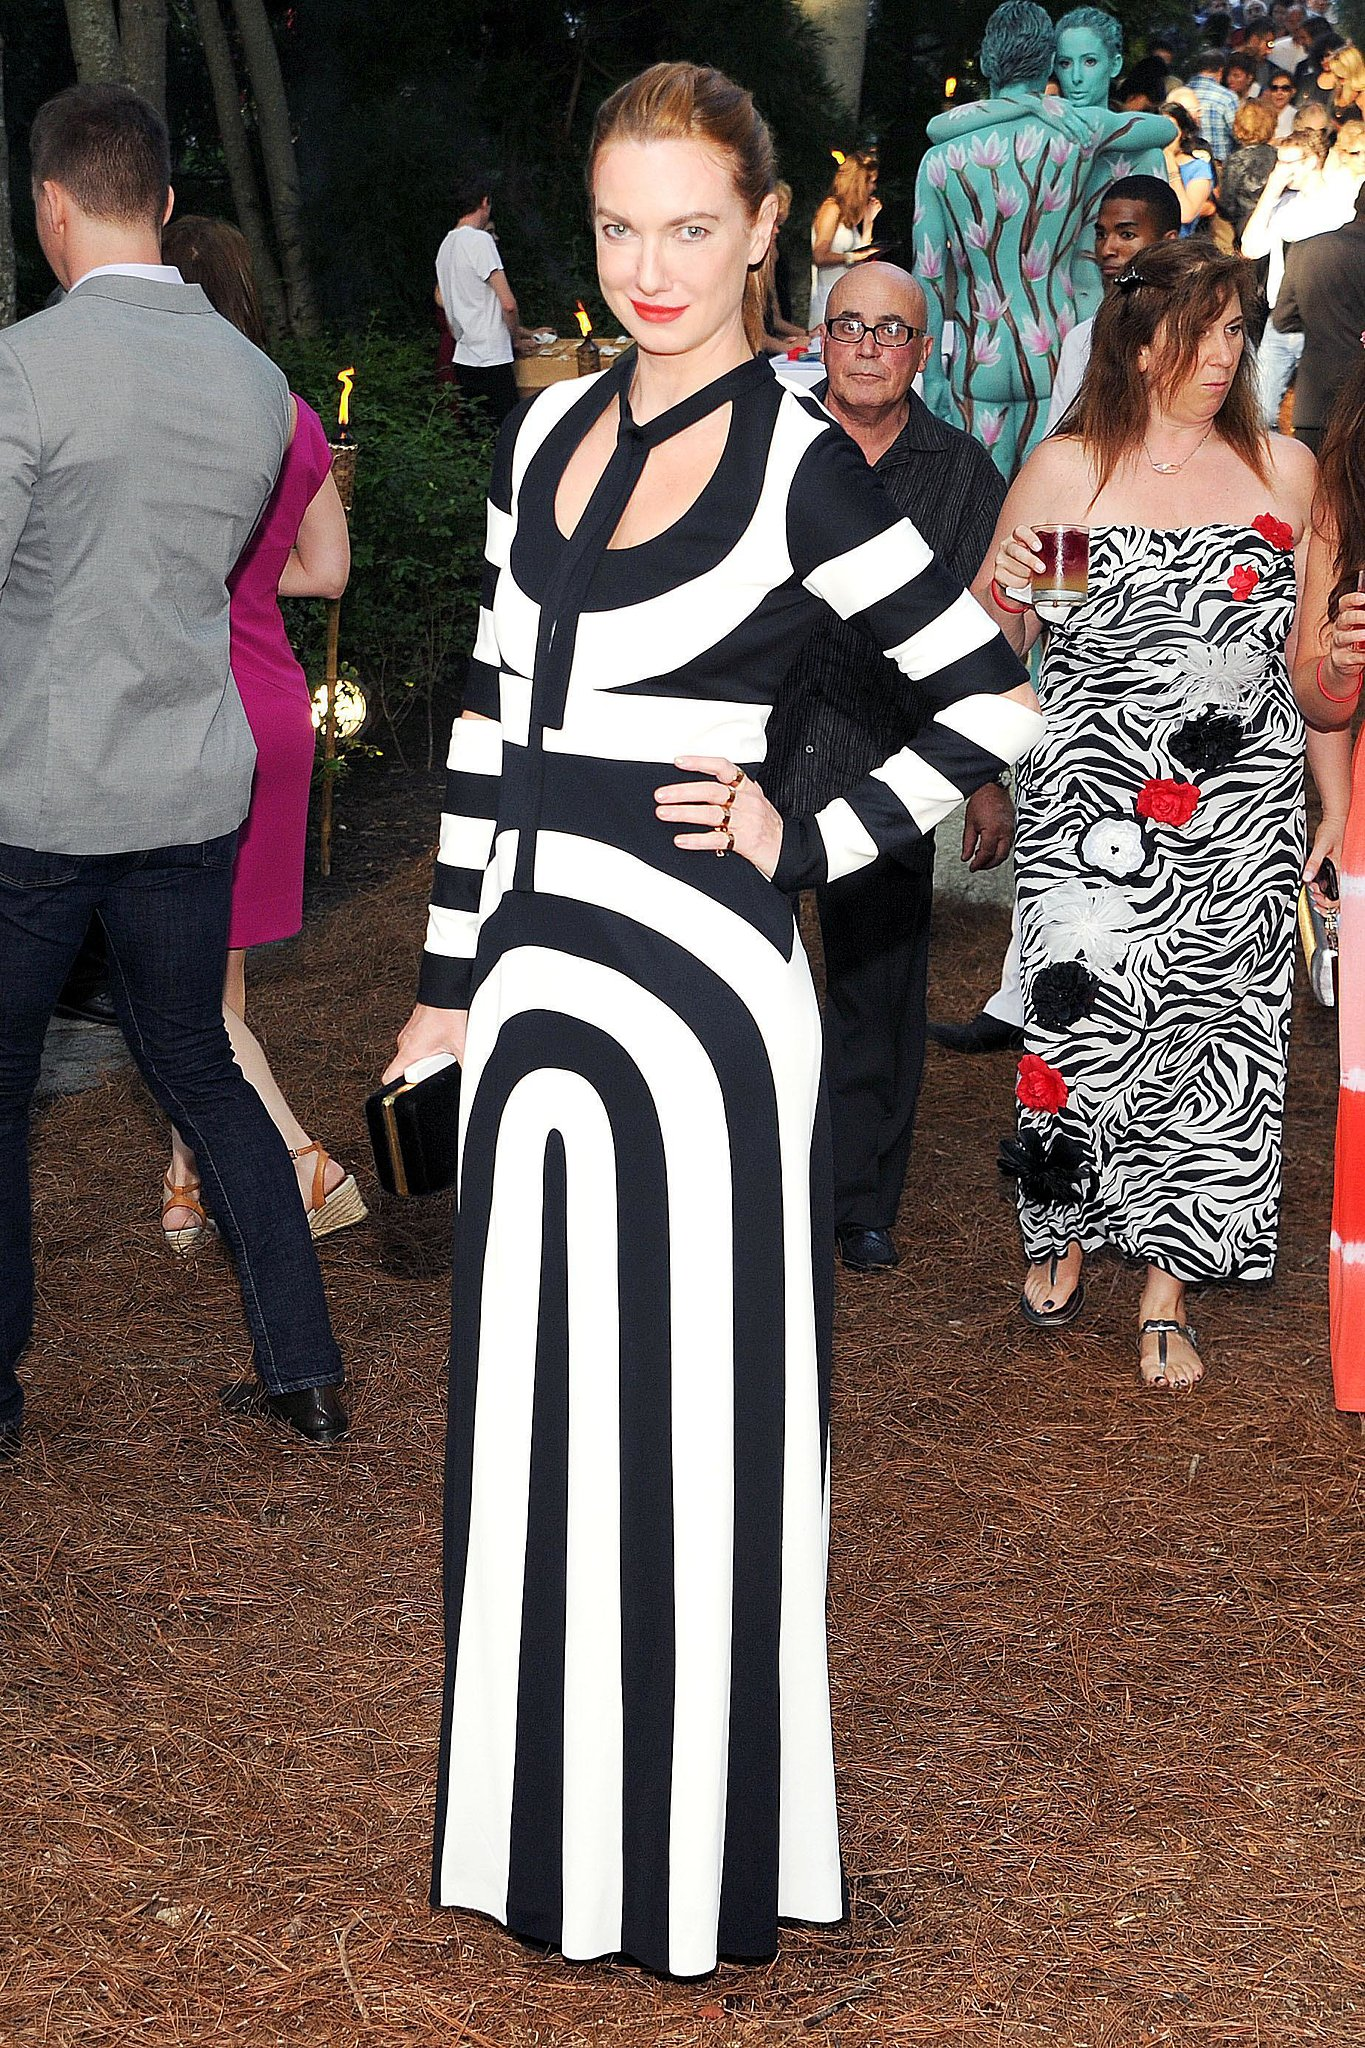 Polina Proshkina was not to be missed in her graphic Marc Jacobs gown while attending the annual Watermill Center benefit.